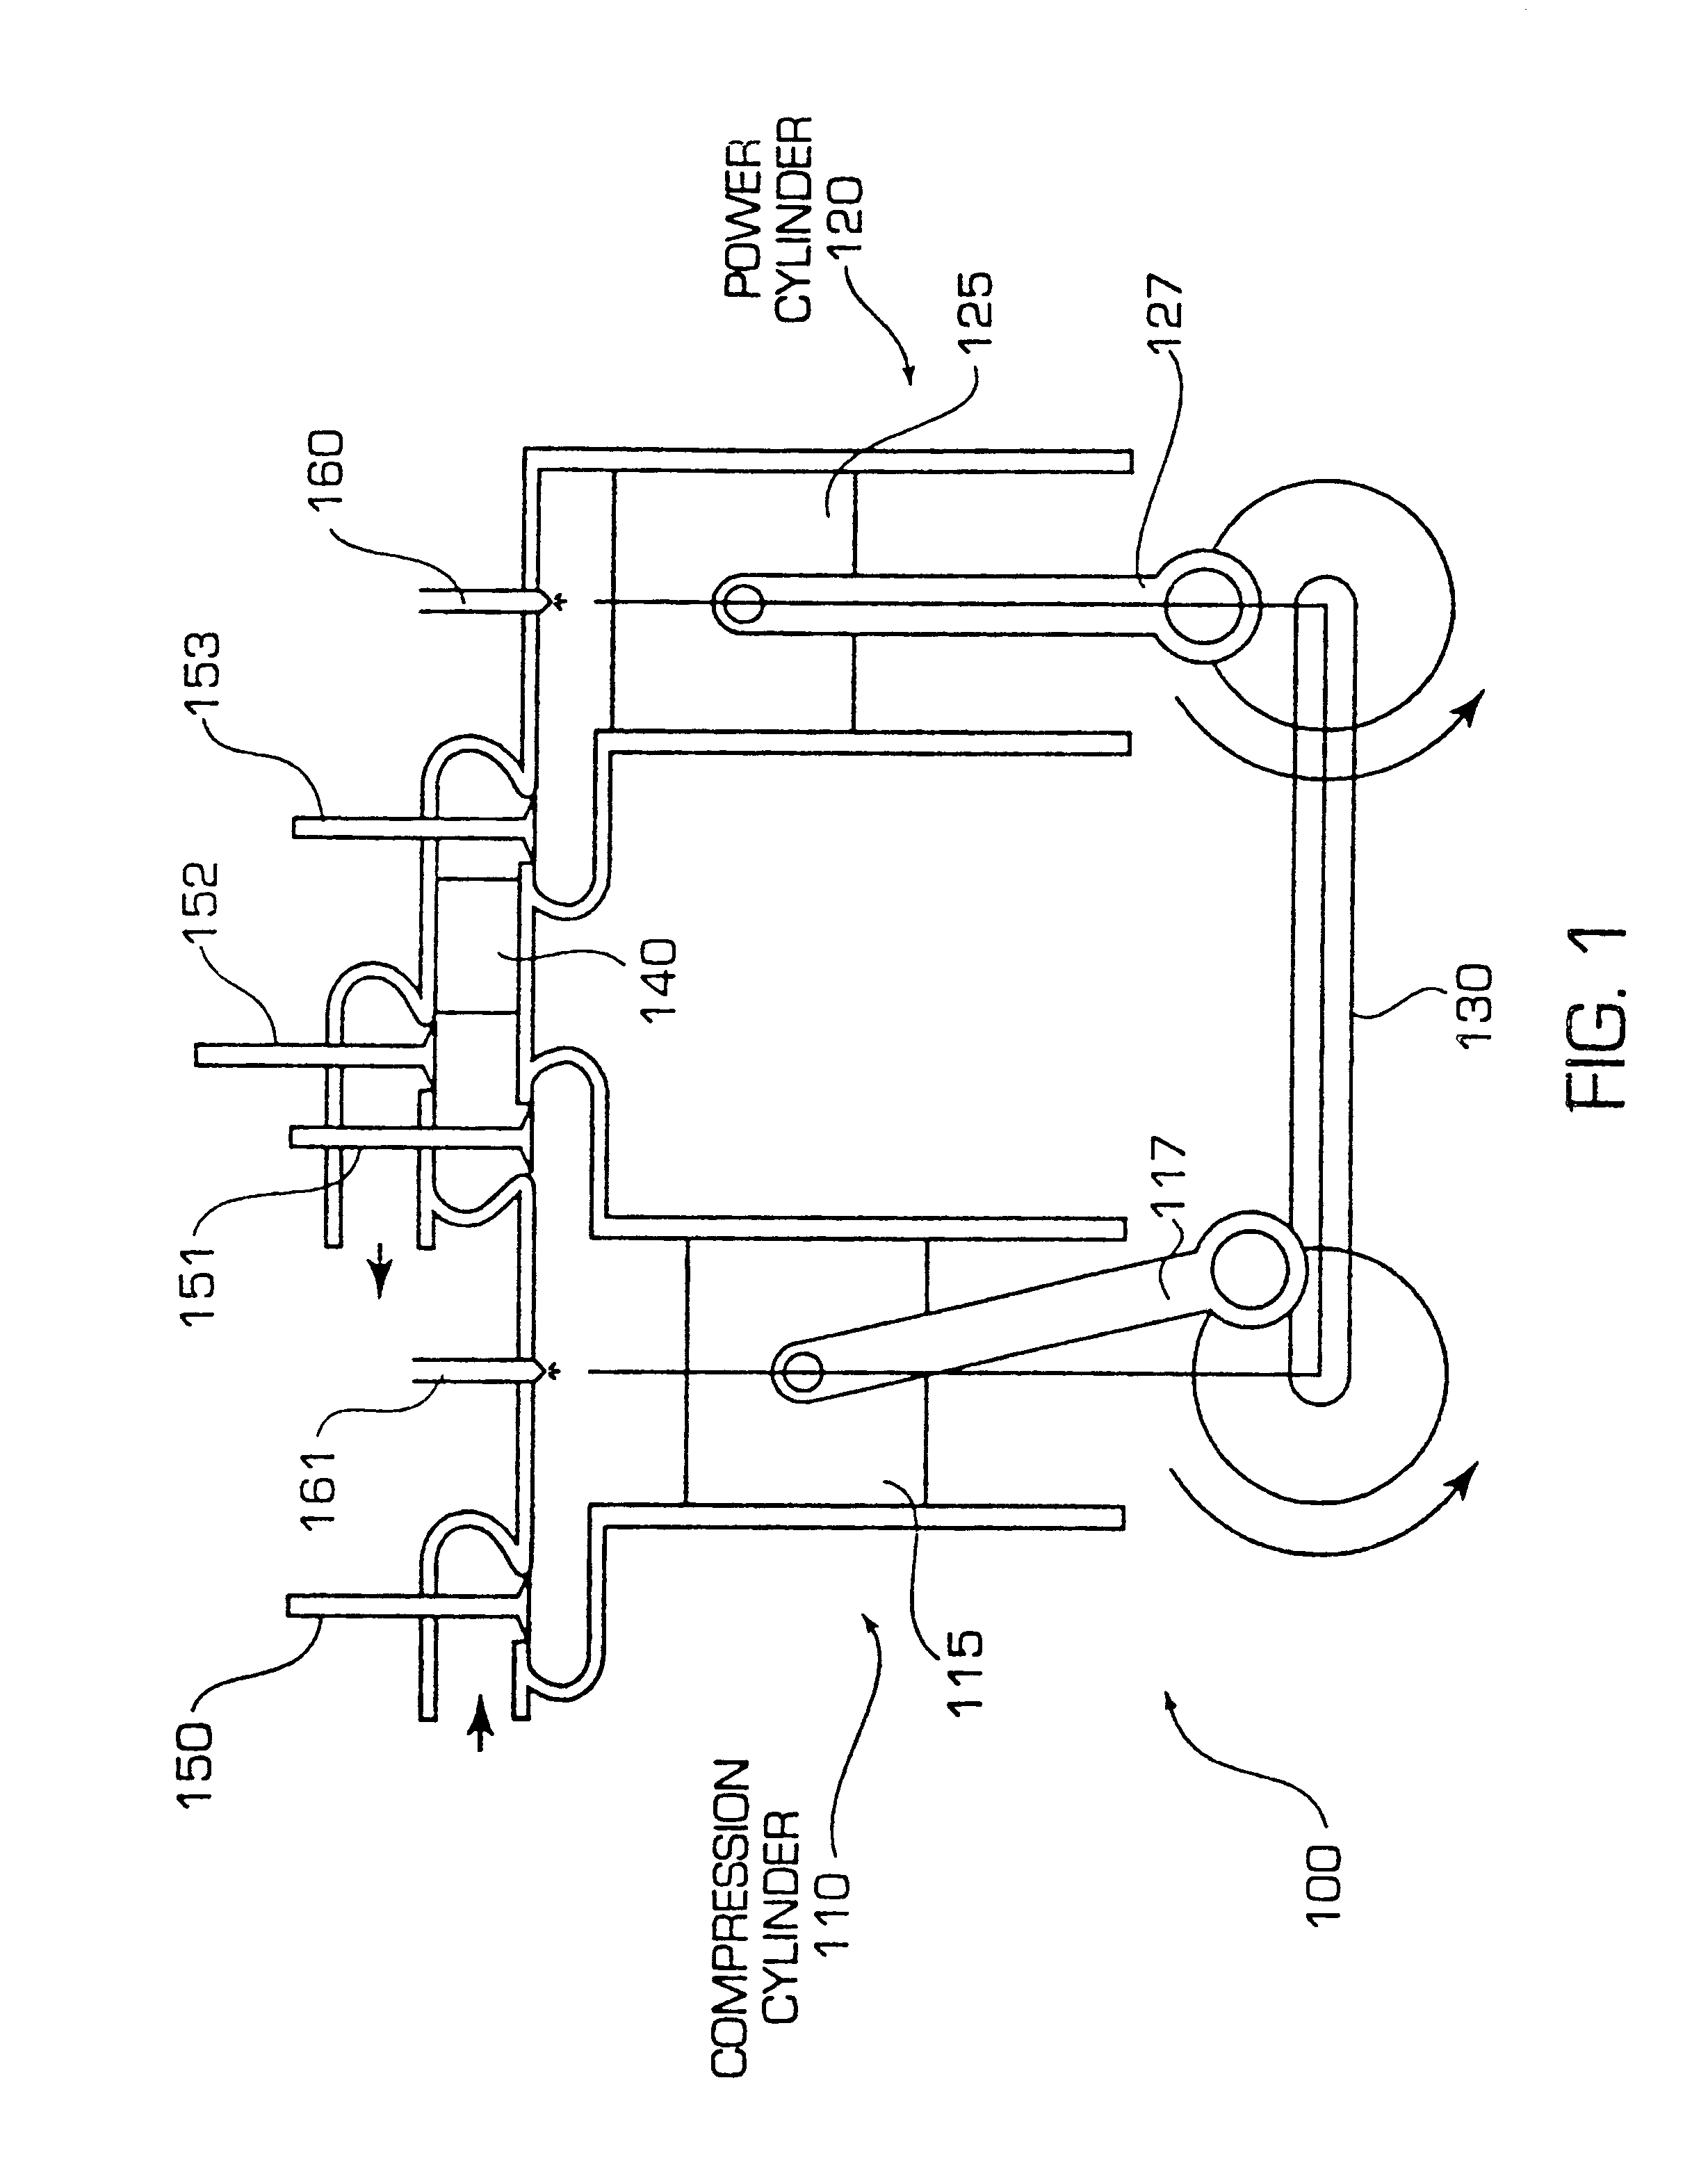 Patent Us6606970 Adiabatic Internal Combustion Engine With Diagram Of A Show How Works Drawing